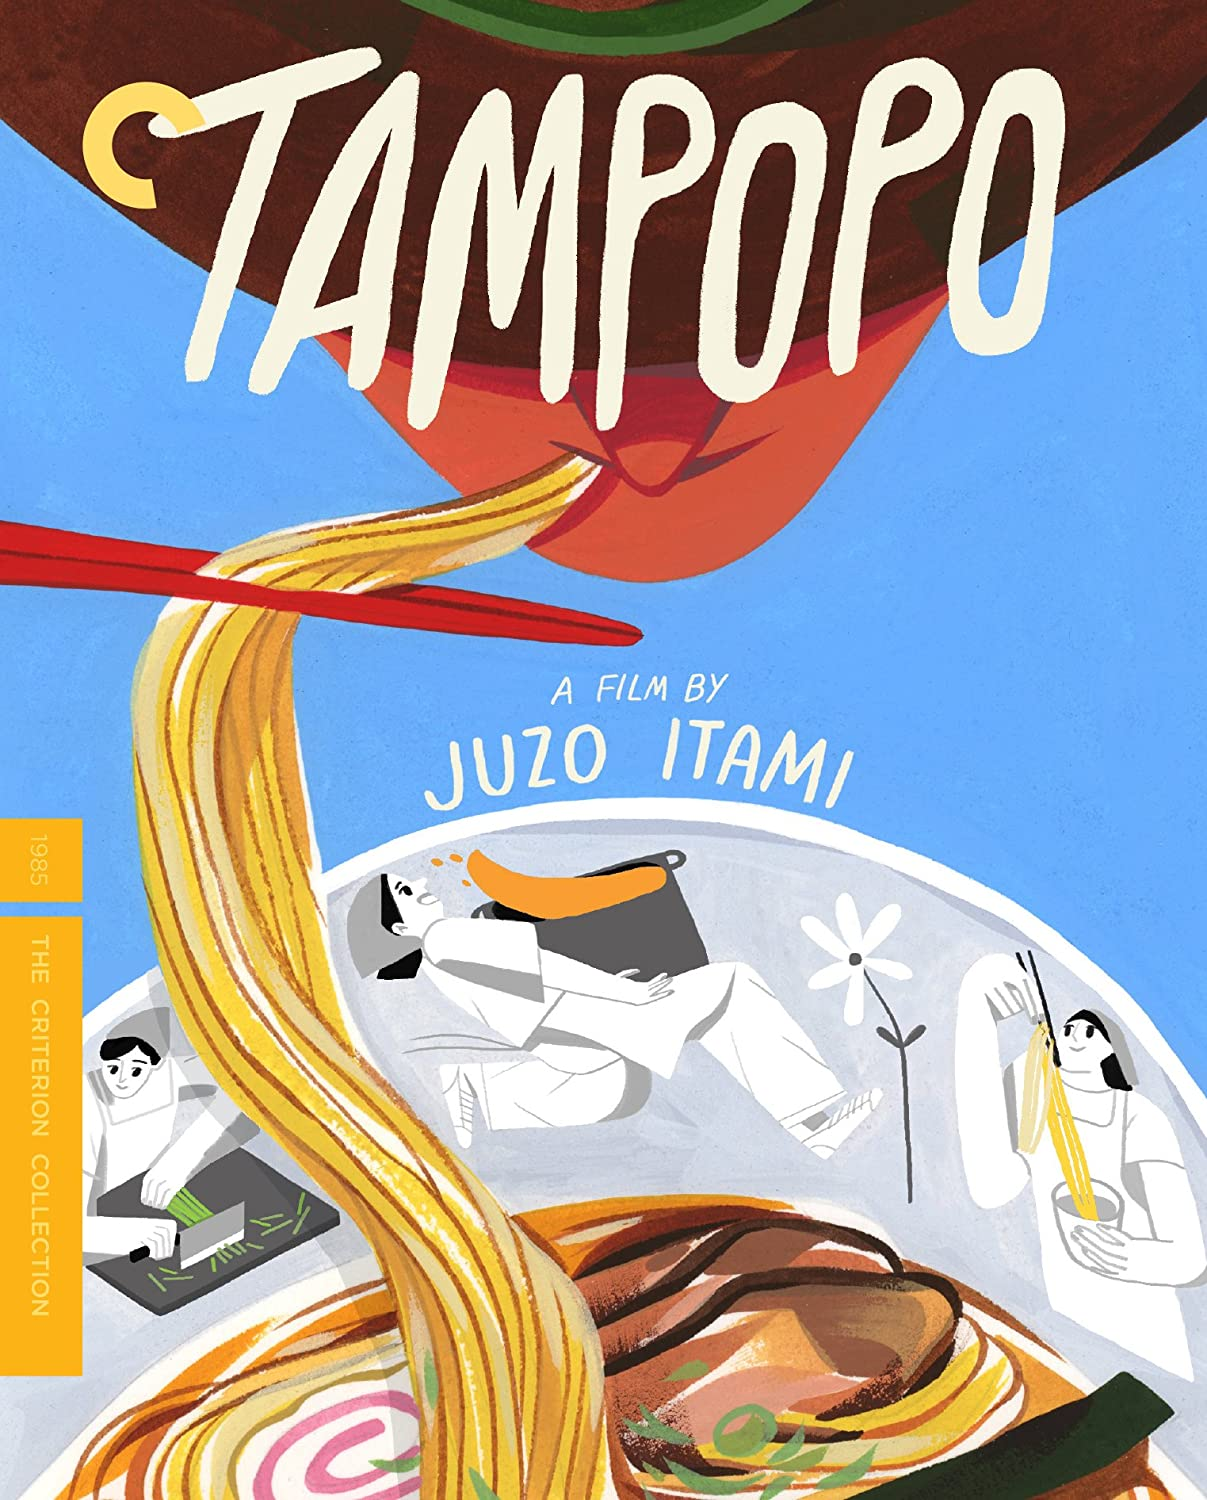 Outlet sale feature Tampopo Max 79% OFF The Criterion Collection Blu-ray